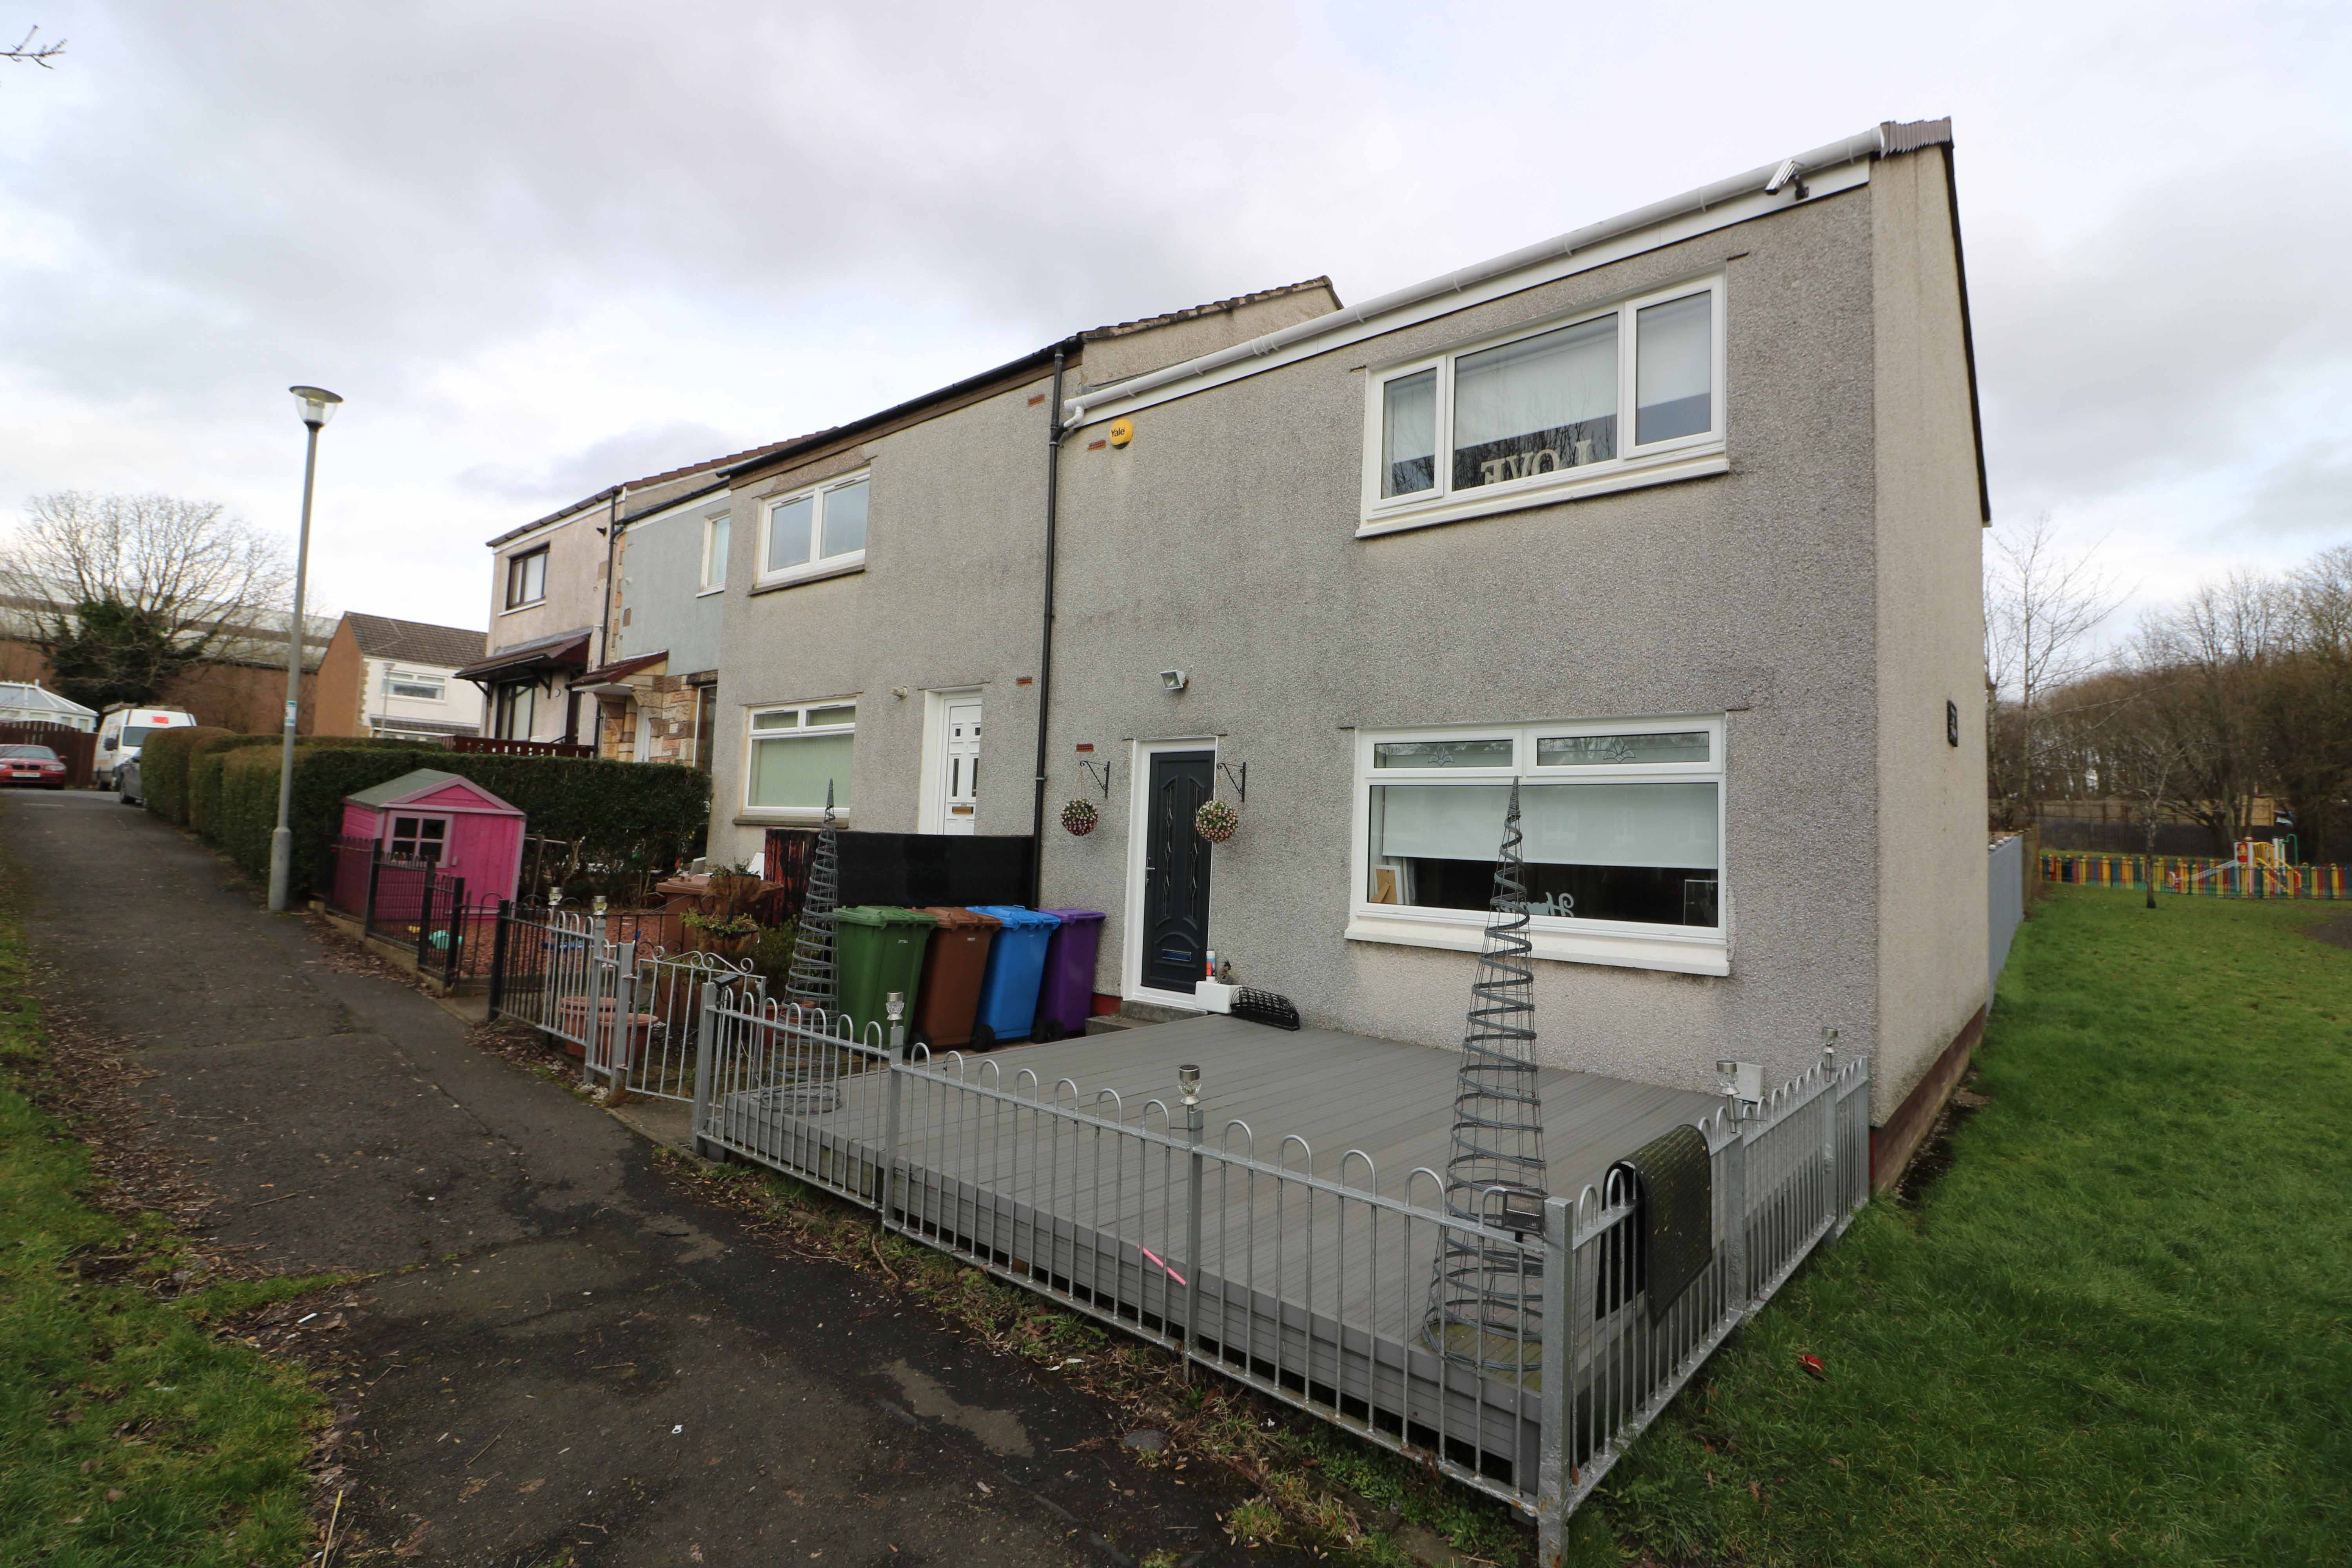 2 Bed End Terraced Villa – Muirhead Gardens, Baillieston